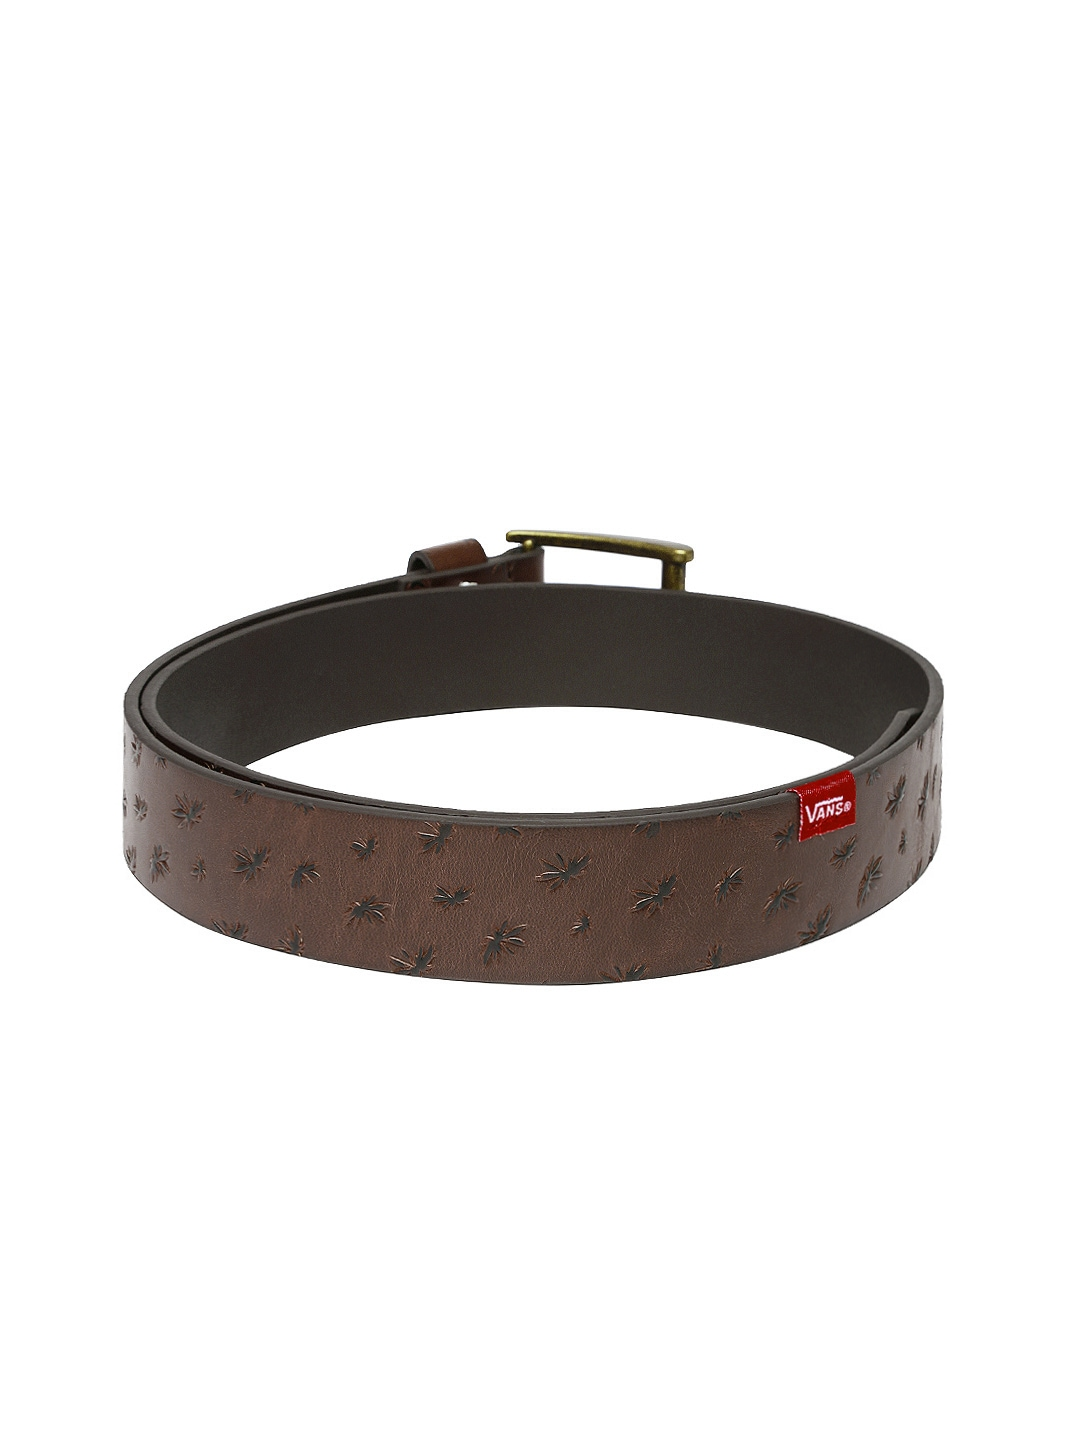 myntra vans brown leather belt 758809 buy myntra